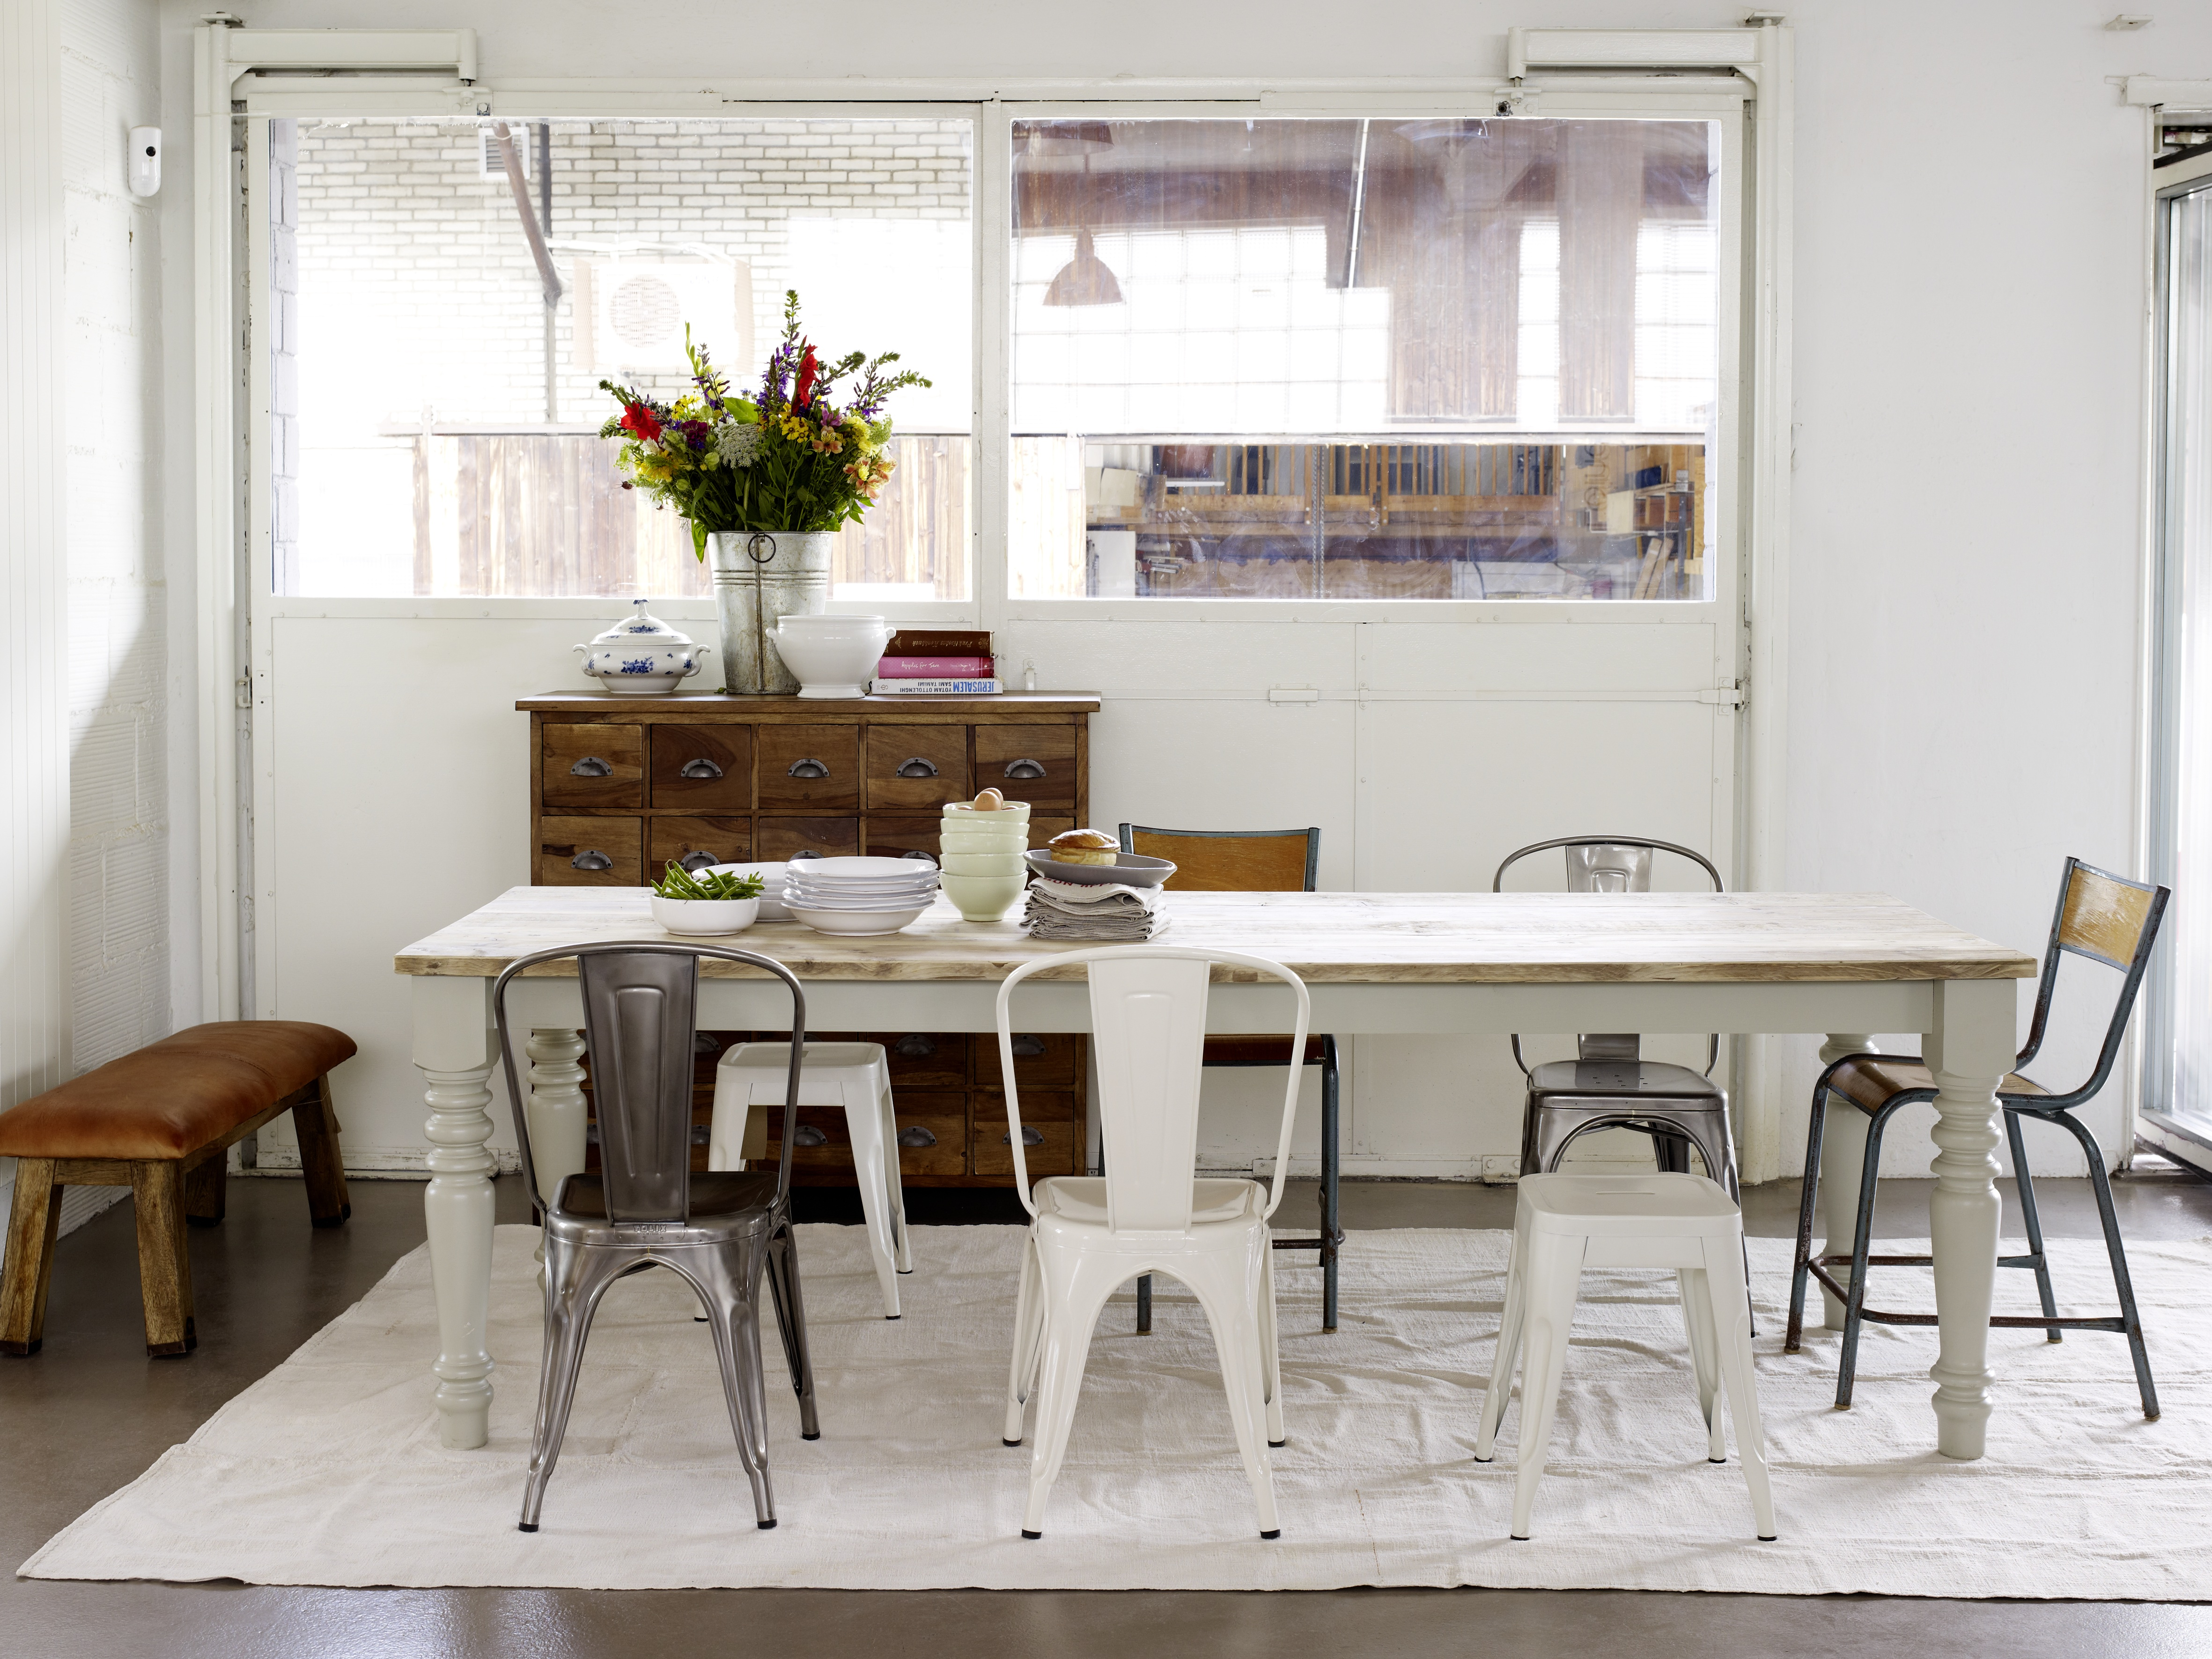 Industrial Wohnen Shabby Chic: A Decorating Trend With Contrasts | Wohnen